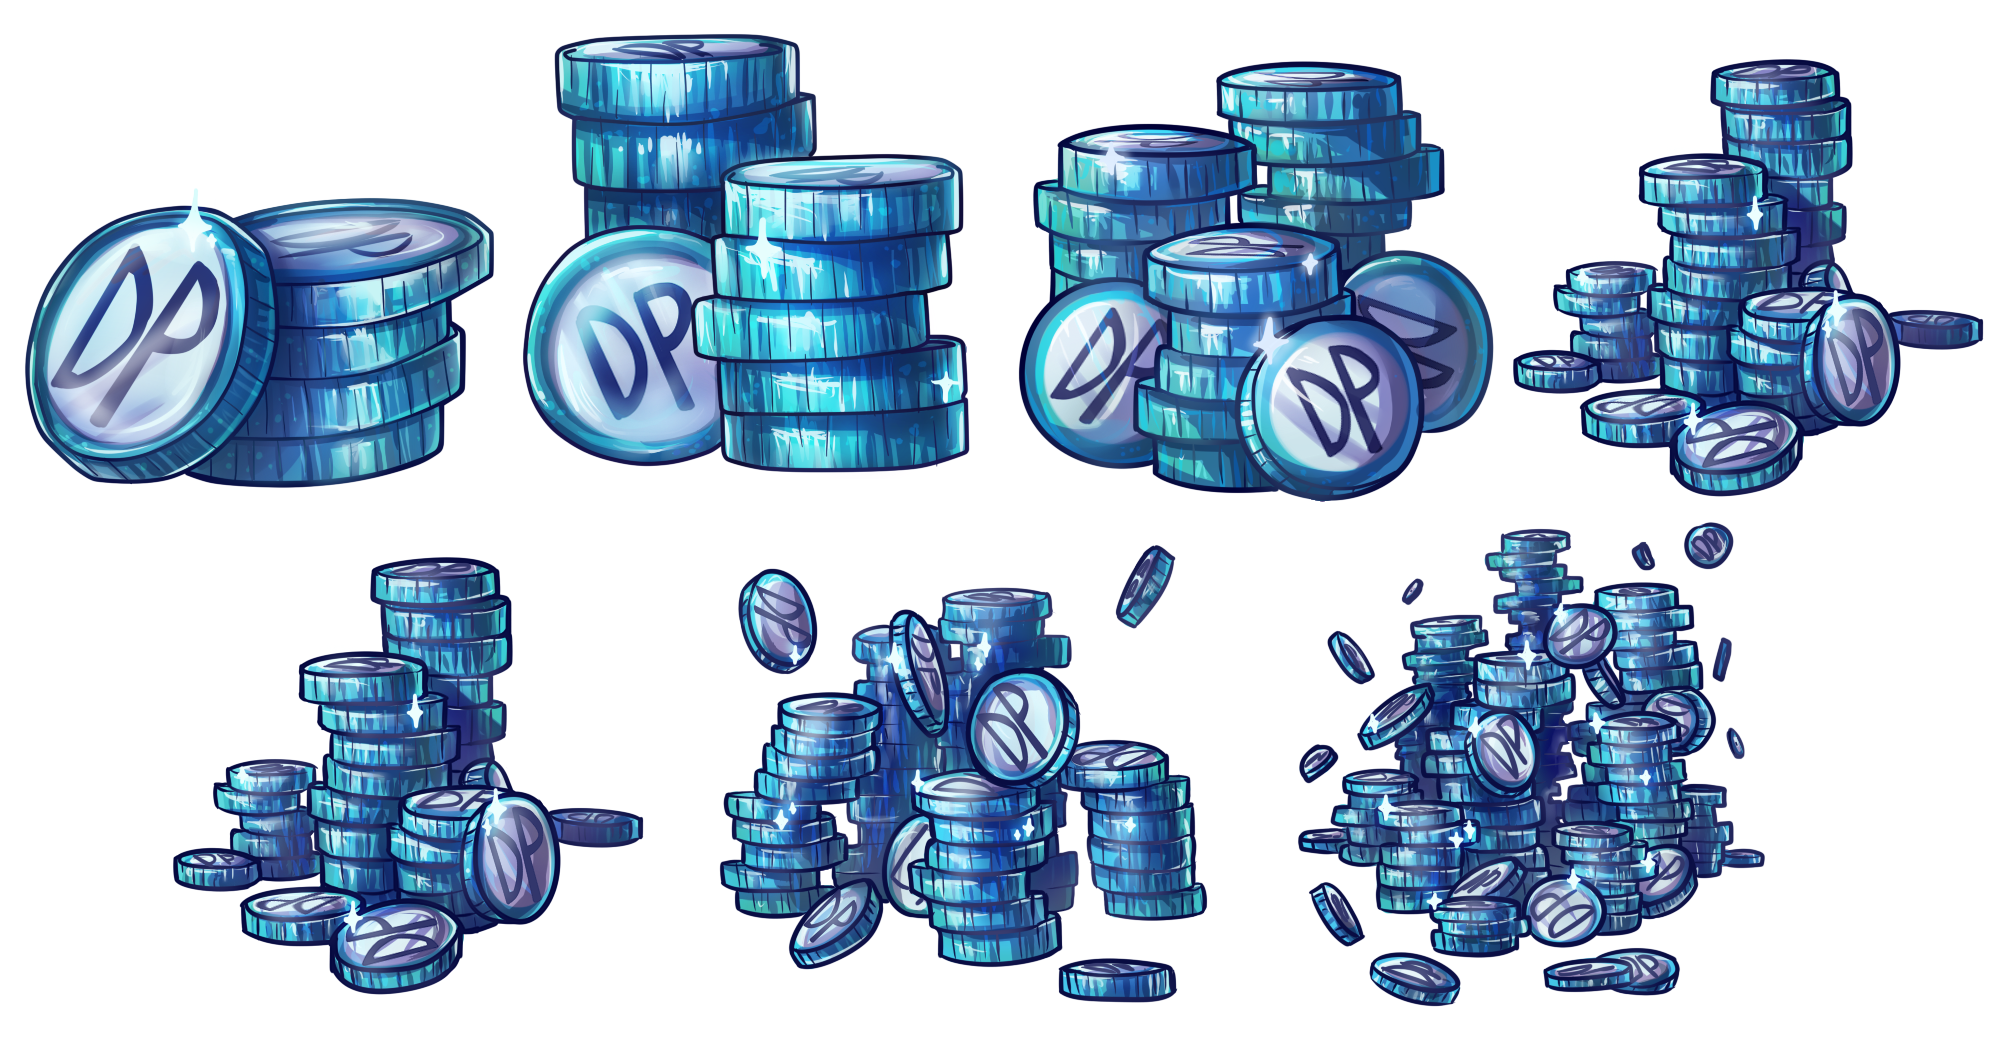 Stacks of in game currency to promote cash shop sales.